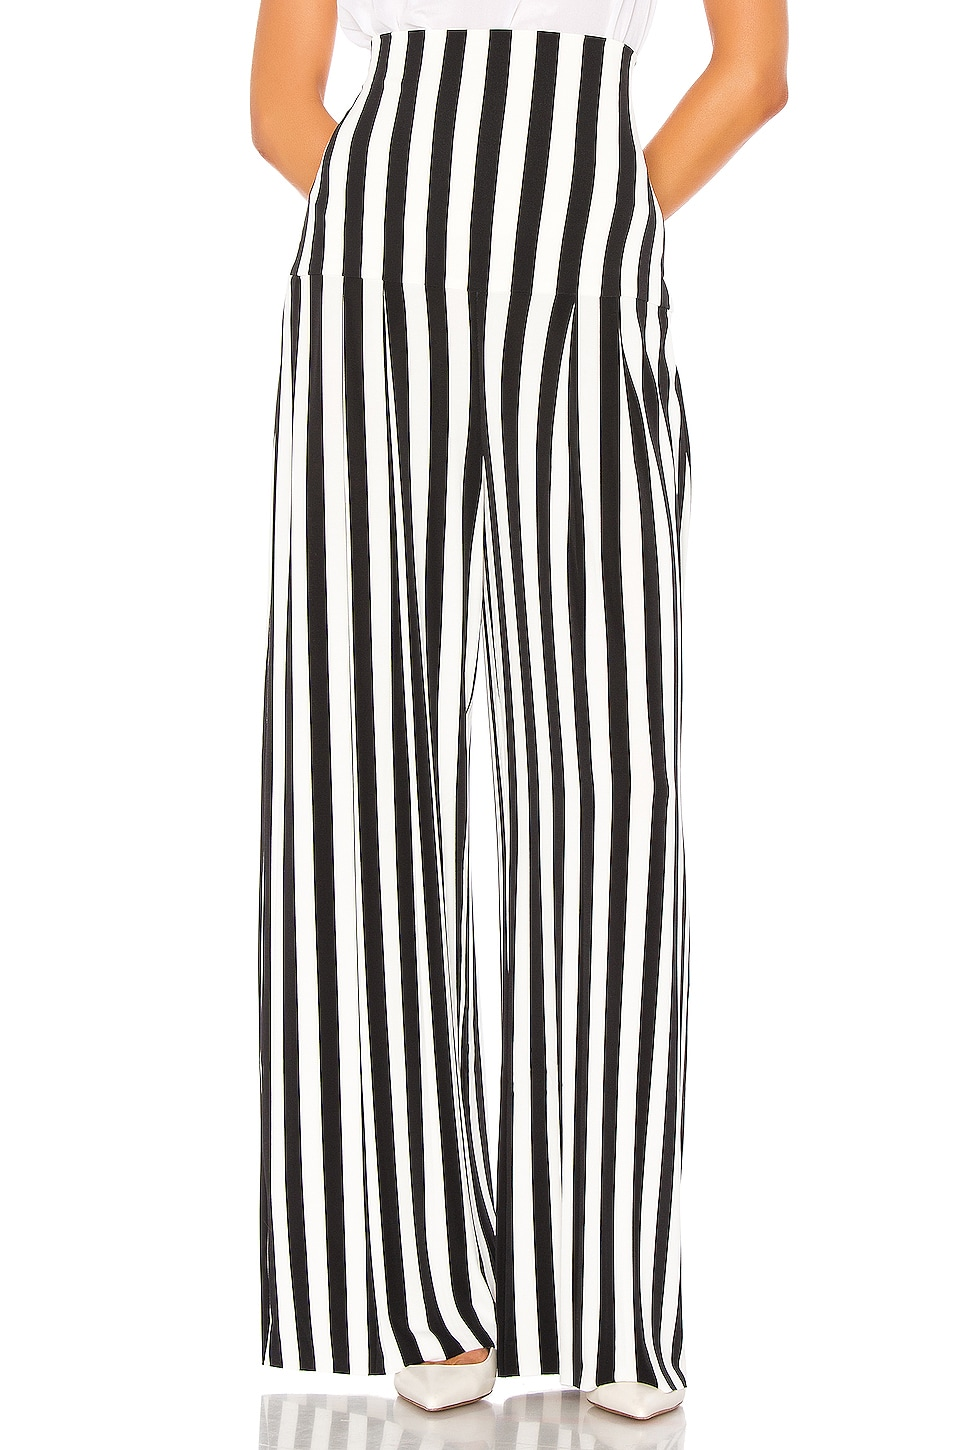 Norma Kamali High Waist Pleat Pant in Stripe